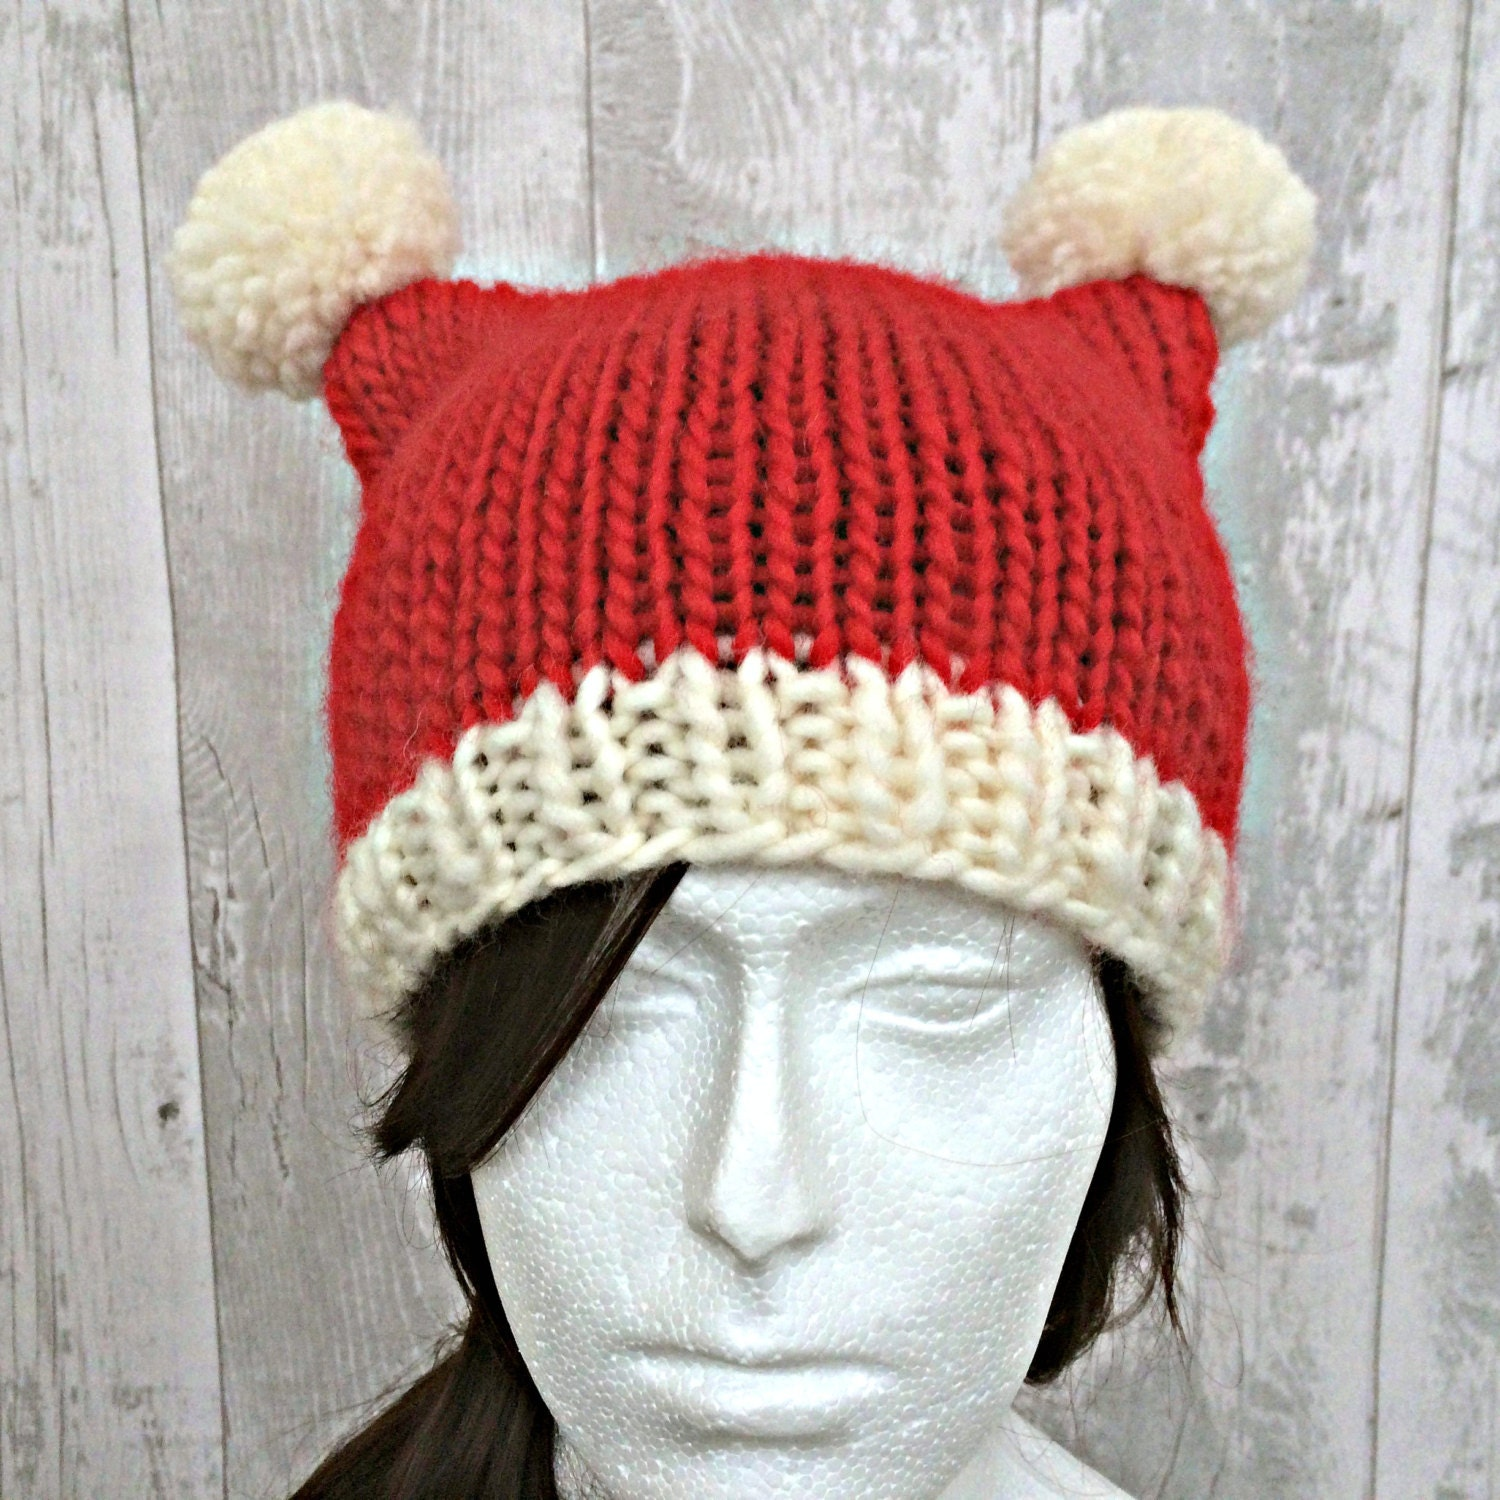 You searched for: christmas hat! Etsy is the home to thousands of handmade, vintage, and one-of-a-kind products and gifts related to your search. No matter what you're looking for or where you are in the world, our global marketplace of sellers can help you find unique and affordable options. Let's get started!